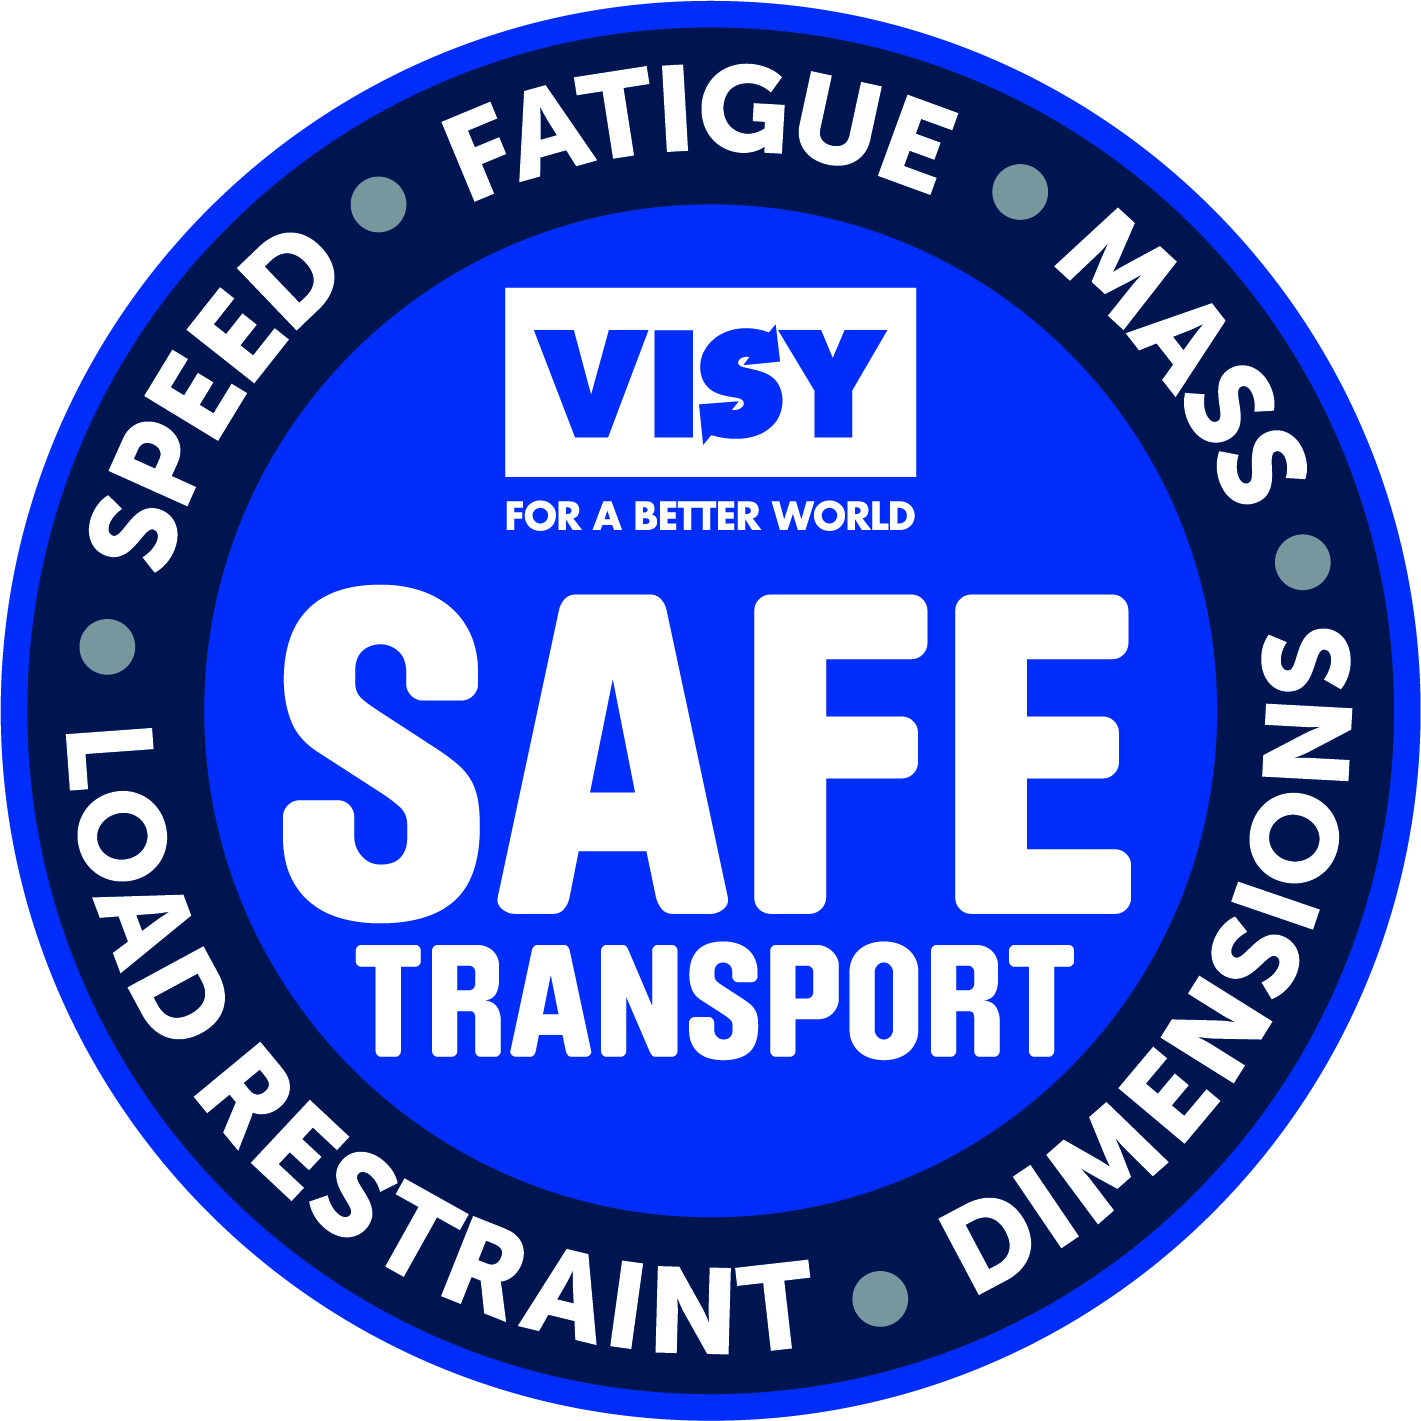 VISY_SafeTransport_logo_FINAL_RGB.jpg